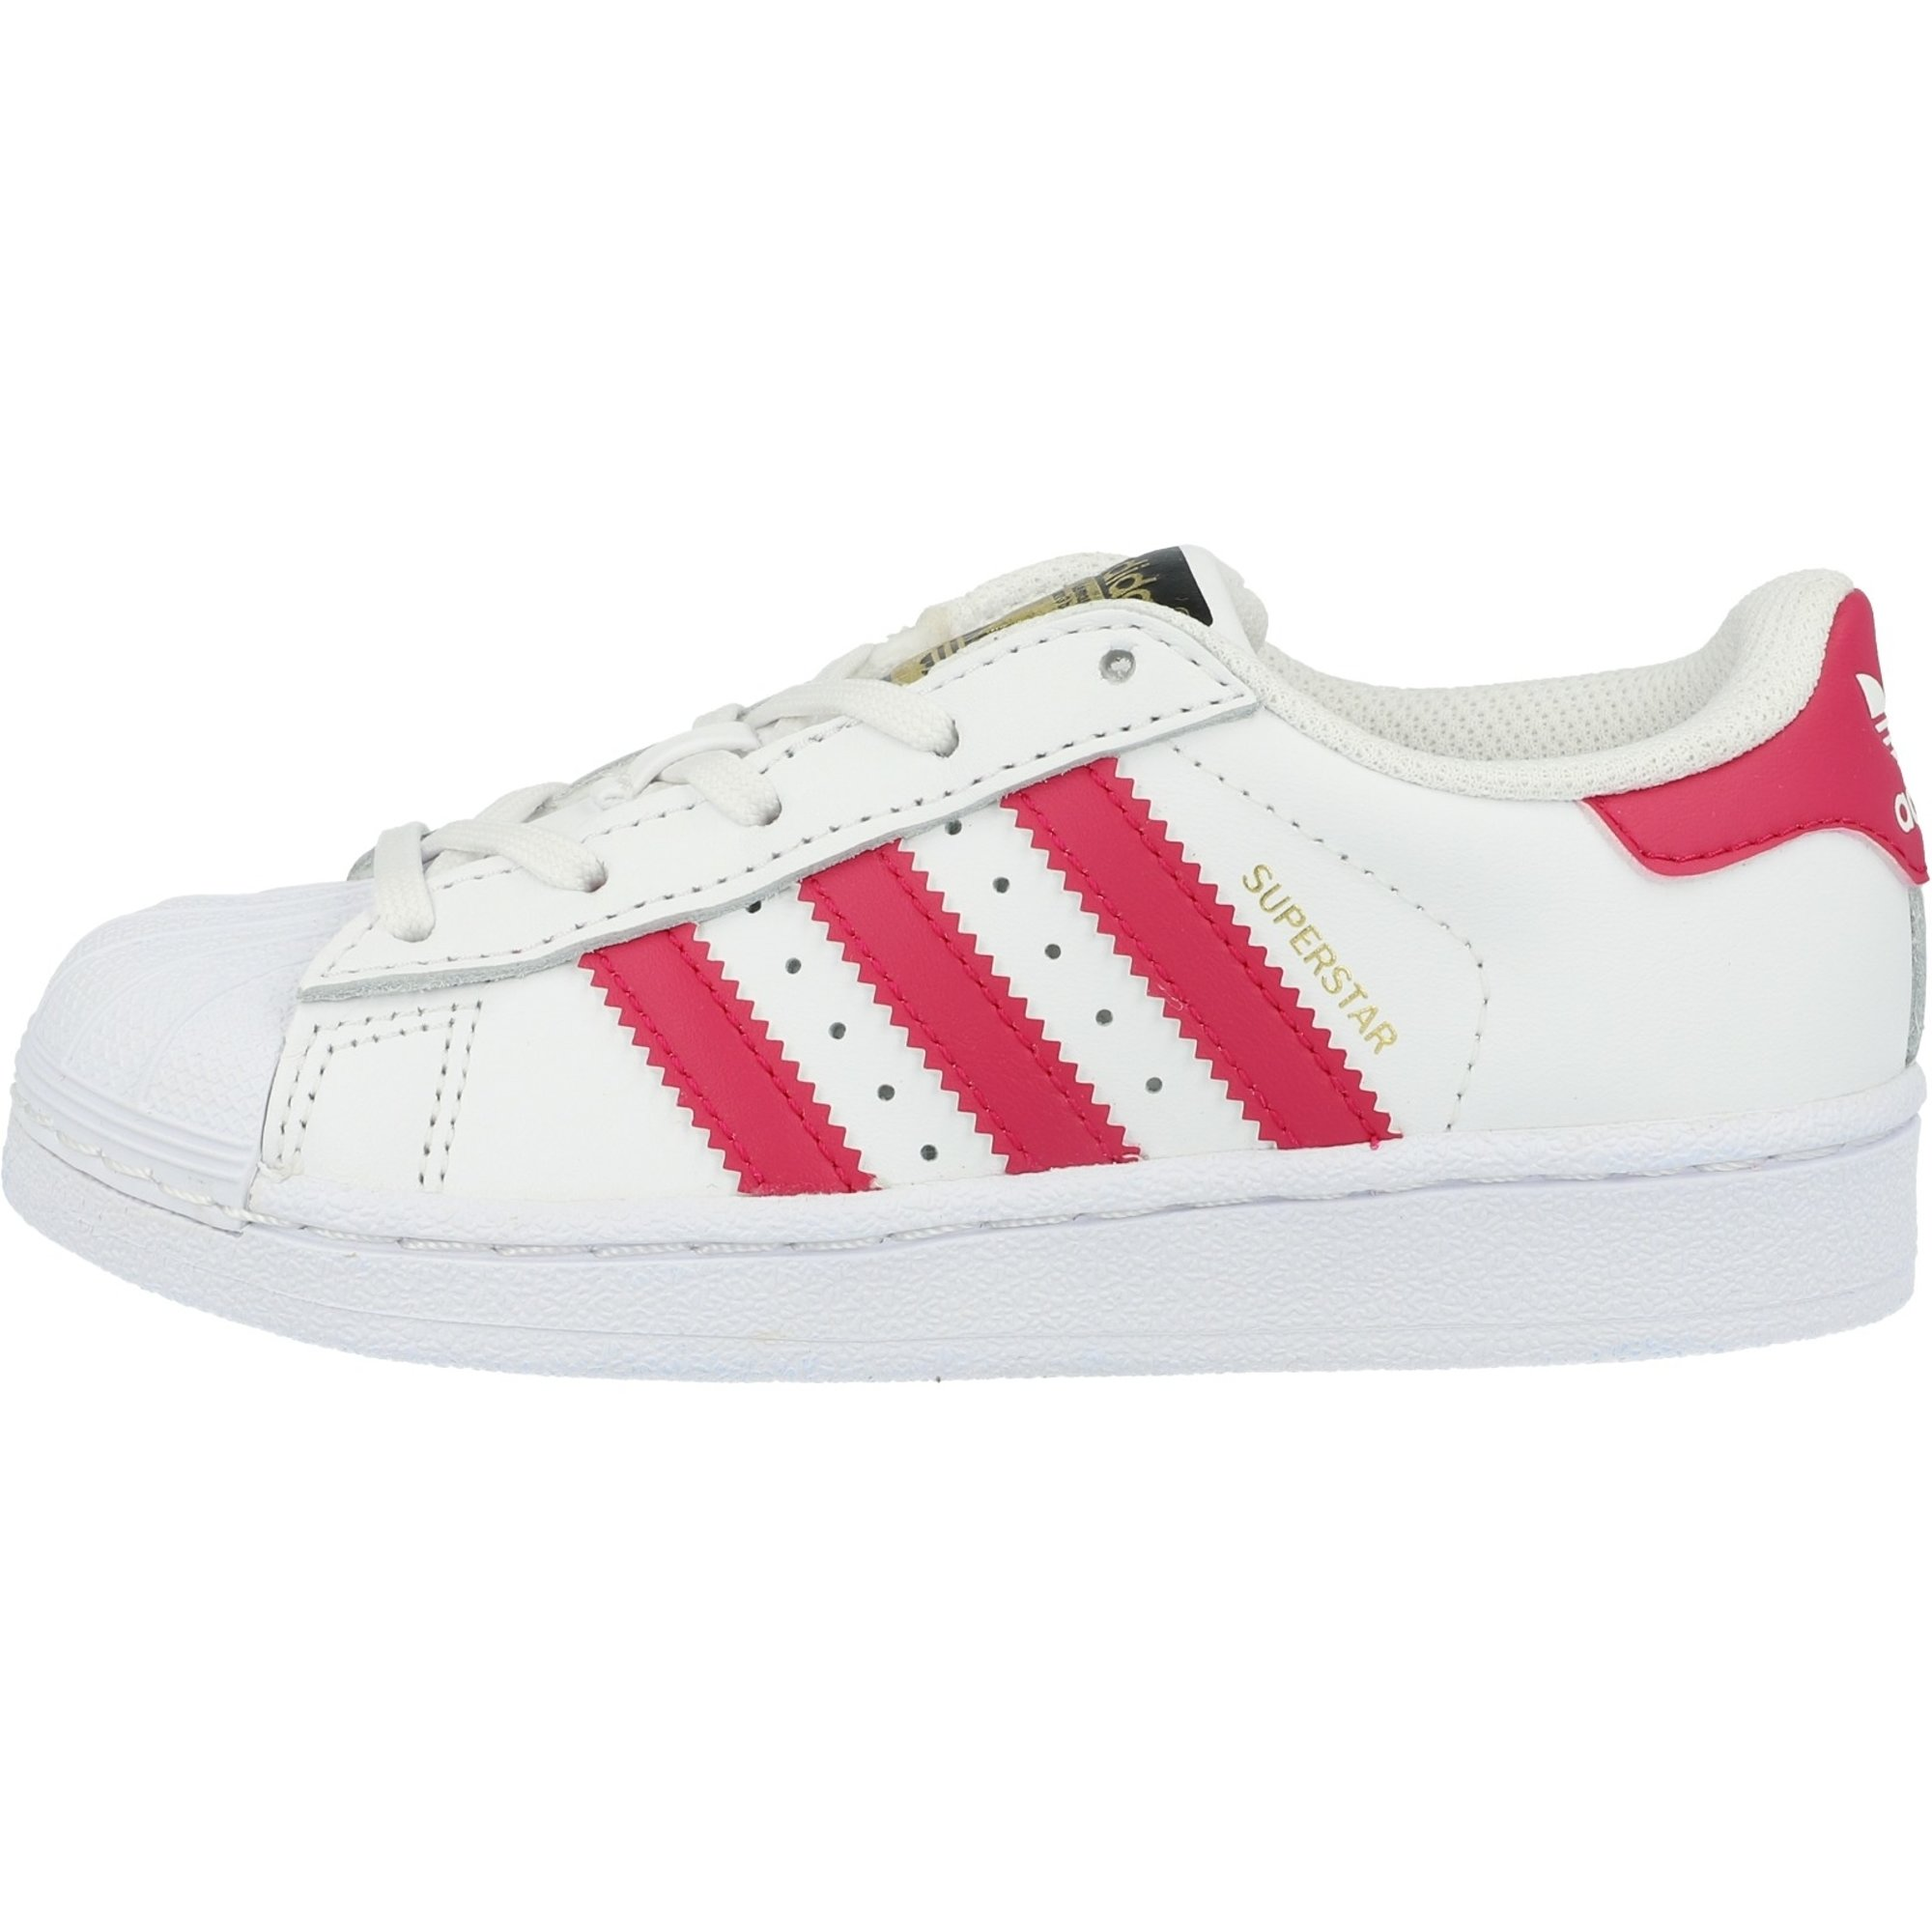 WeißFett Leder Junior Originals Pink C adidas Superstar XPZOkiuT